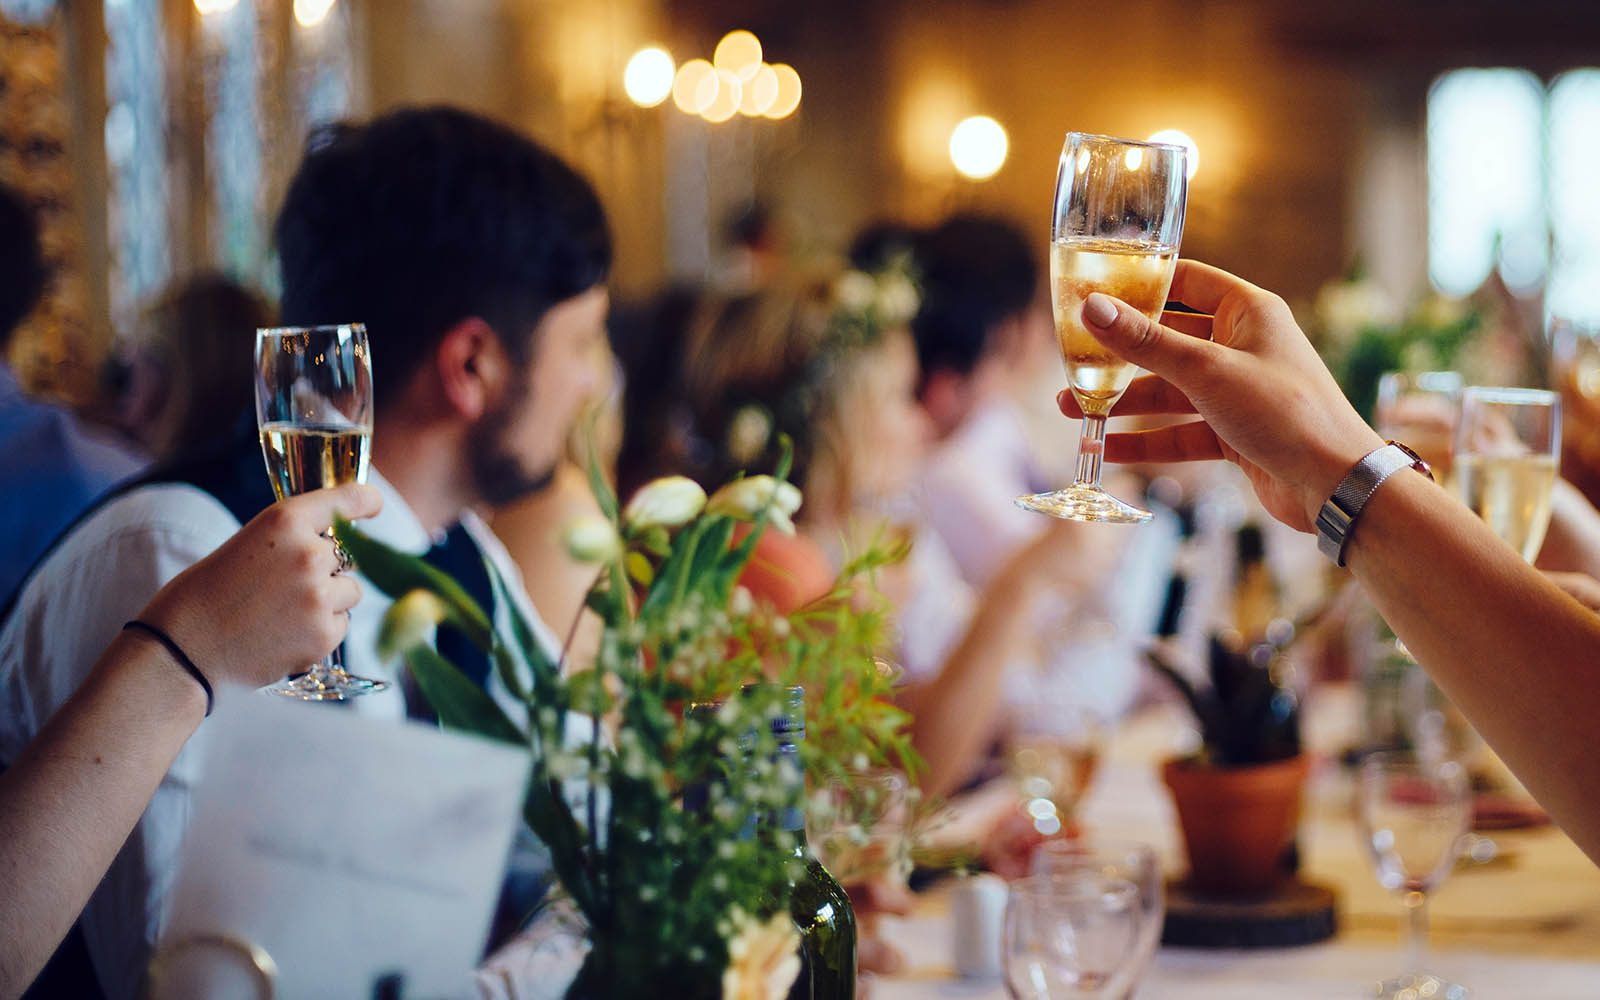 Cheers at a wedding